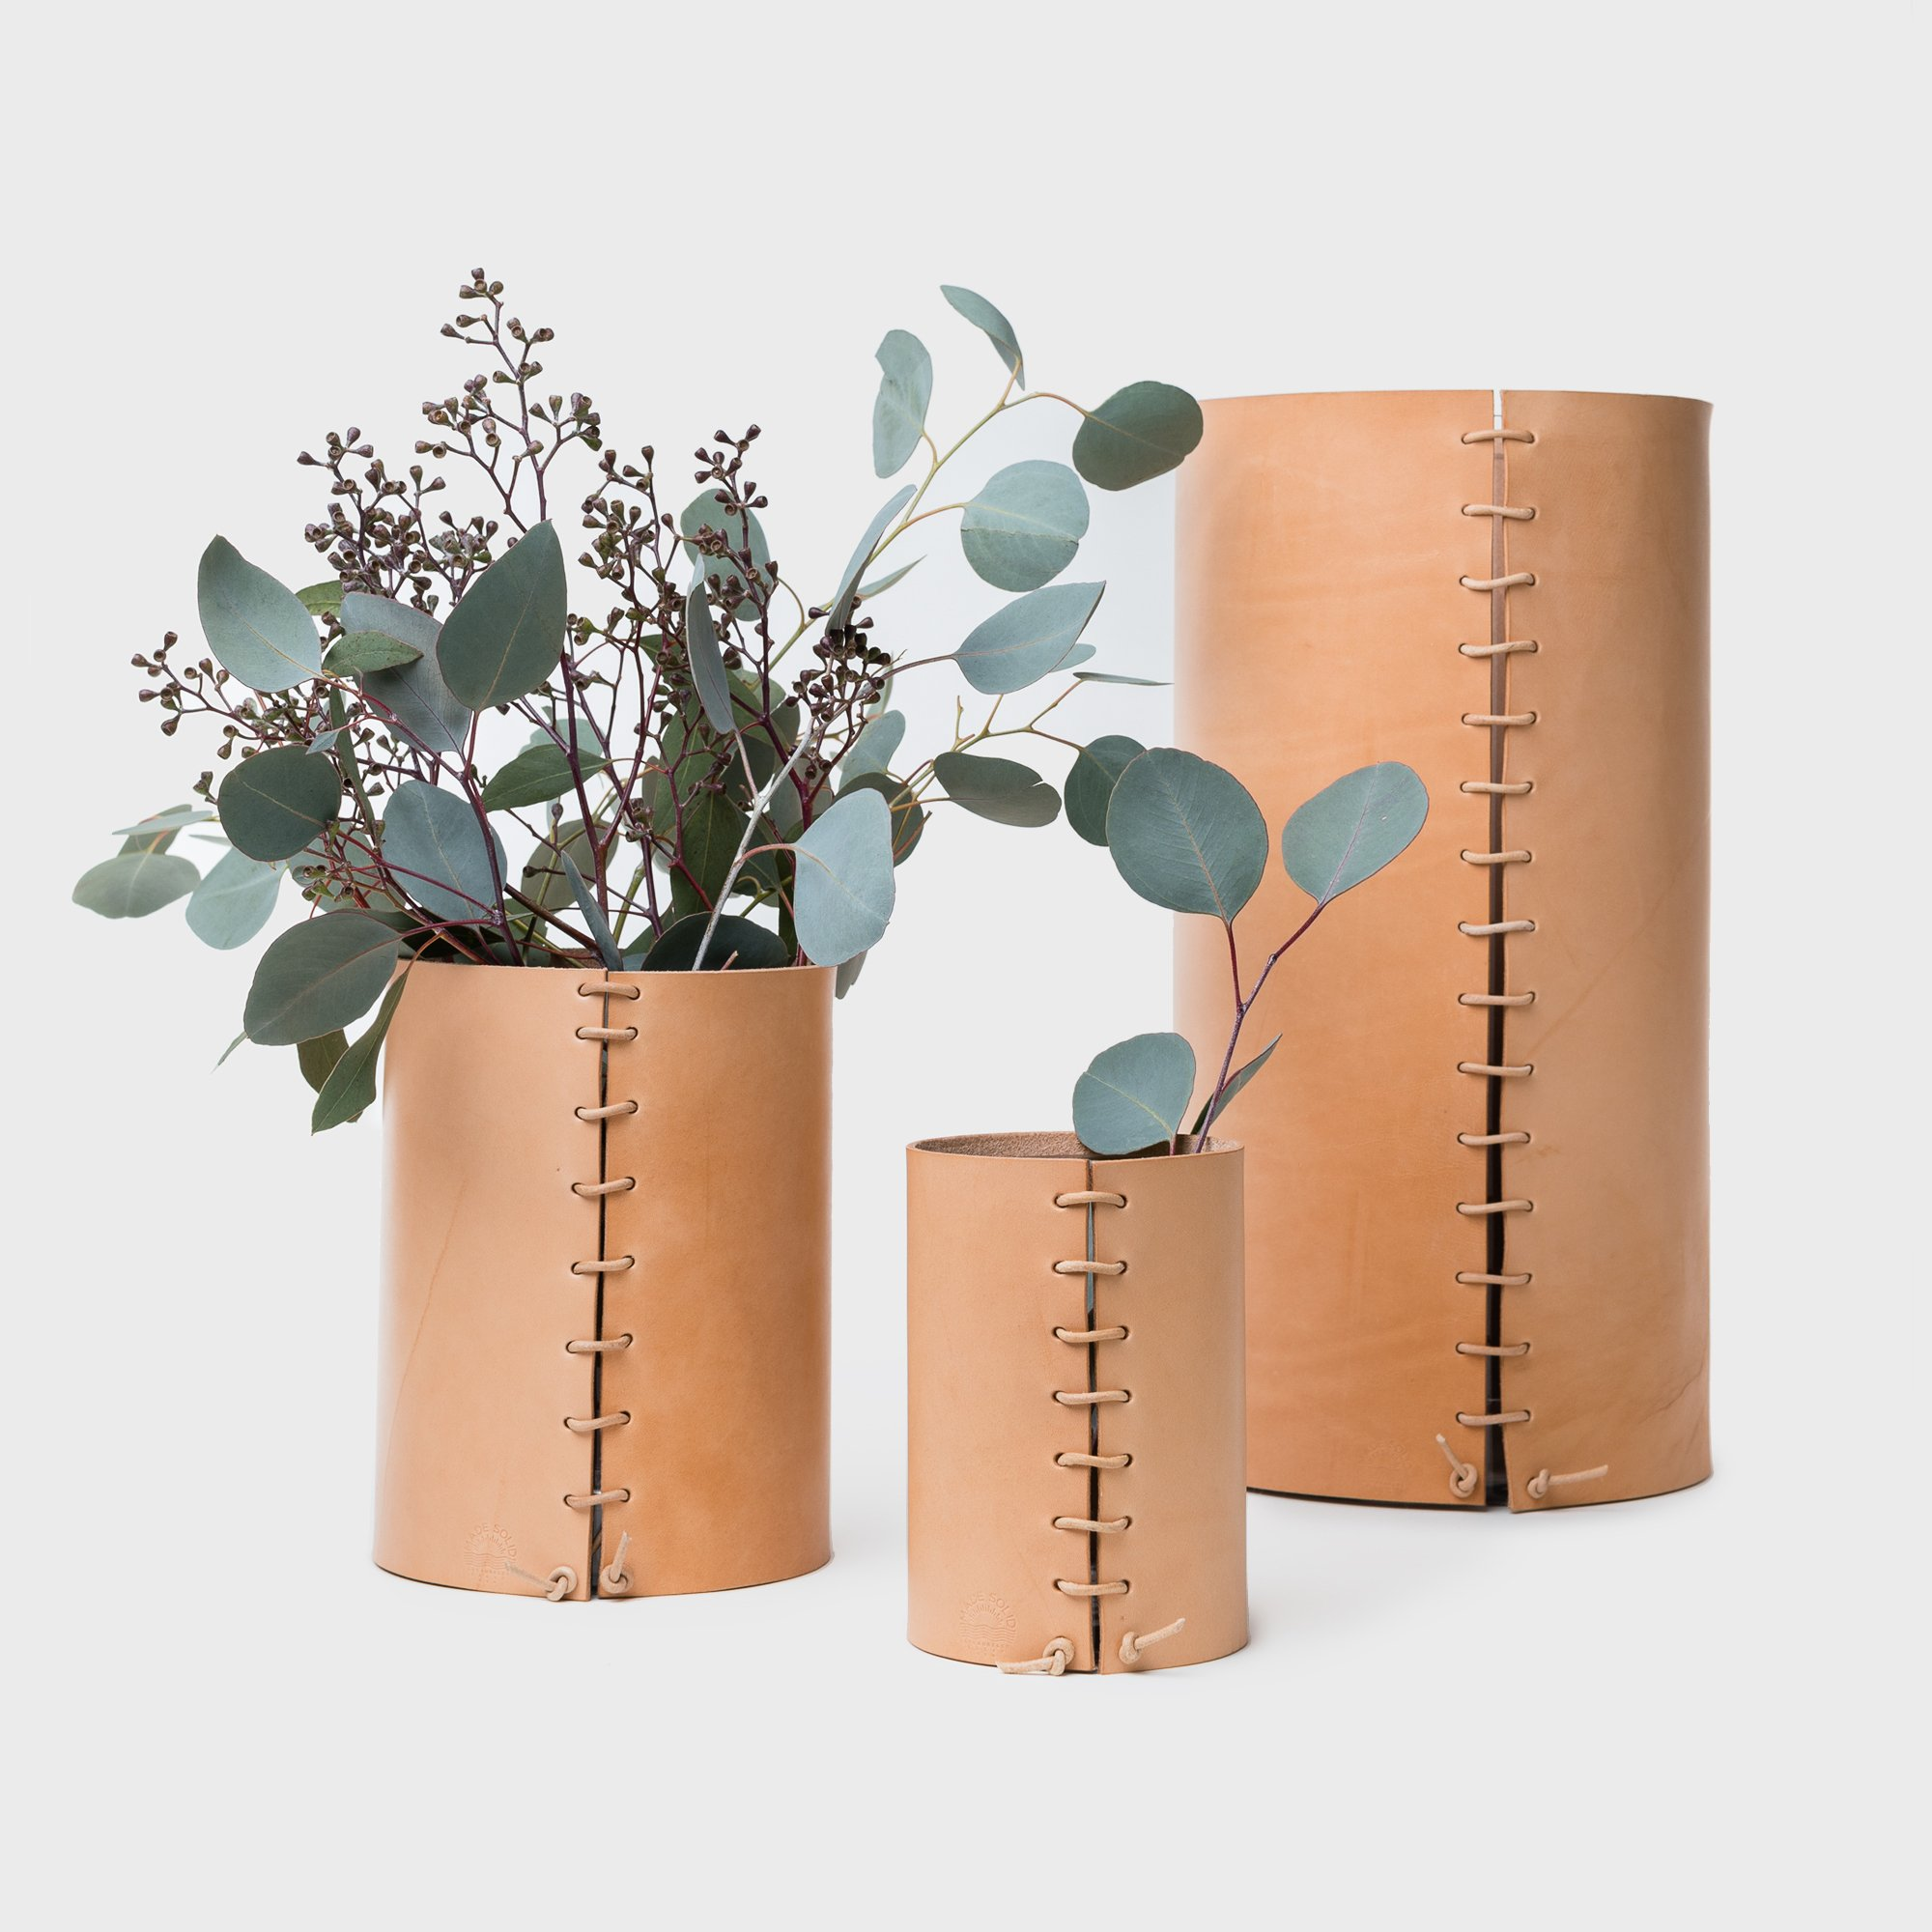 ALL-SORTS-OF-SHOPPE-MADE-SOLID-LEATHER-WRAPPED-VASES-NATURAL